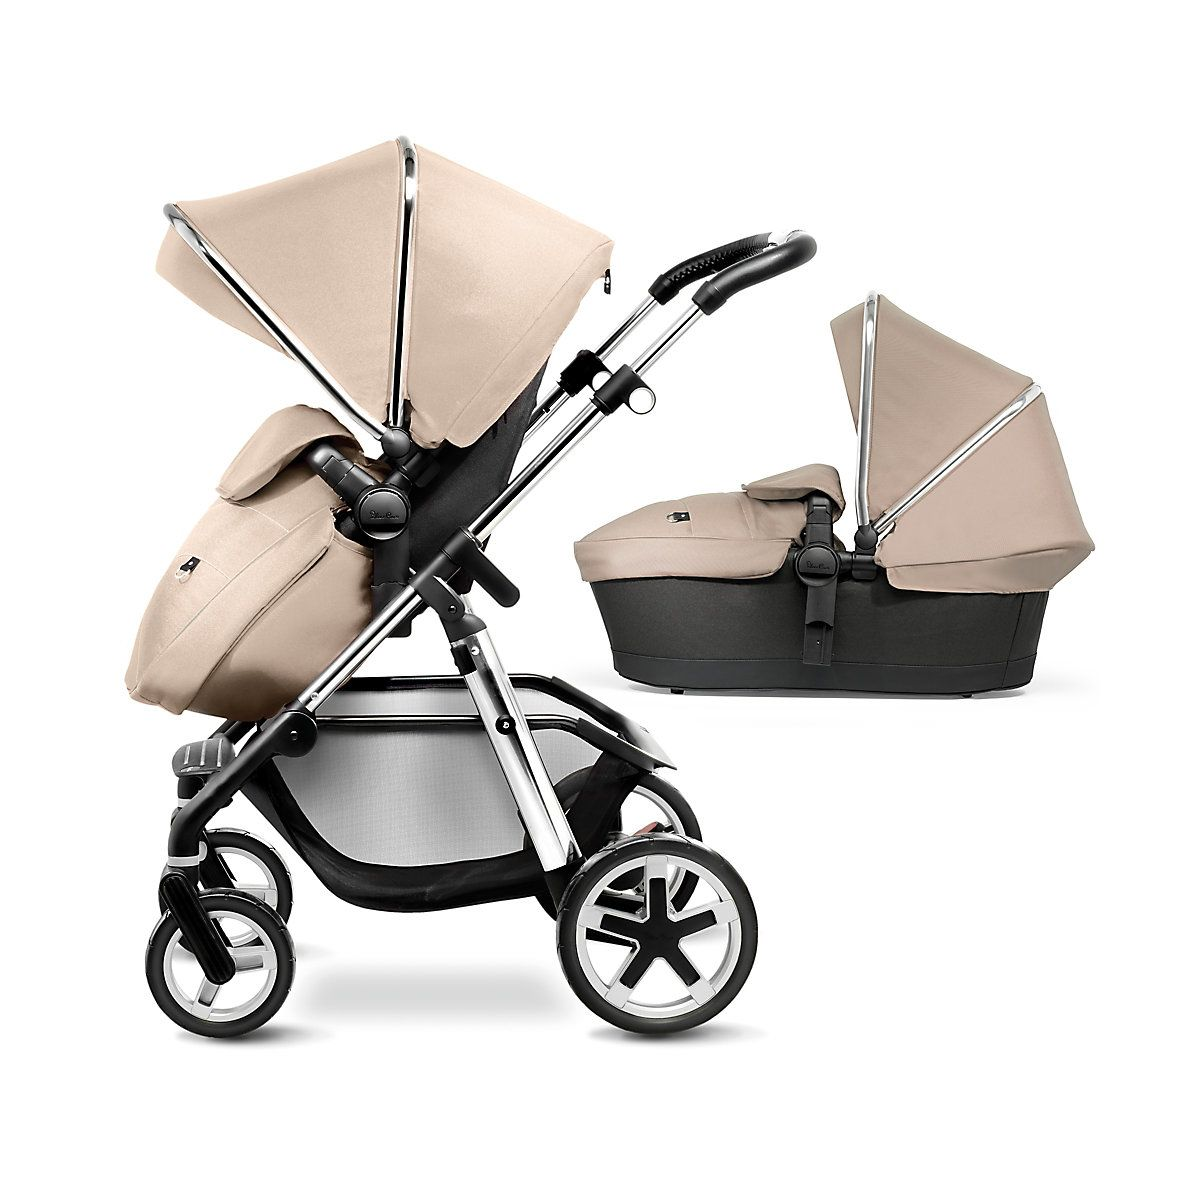 nursery bedding Travel systems for baby, Prams